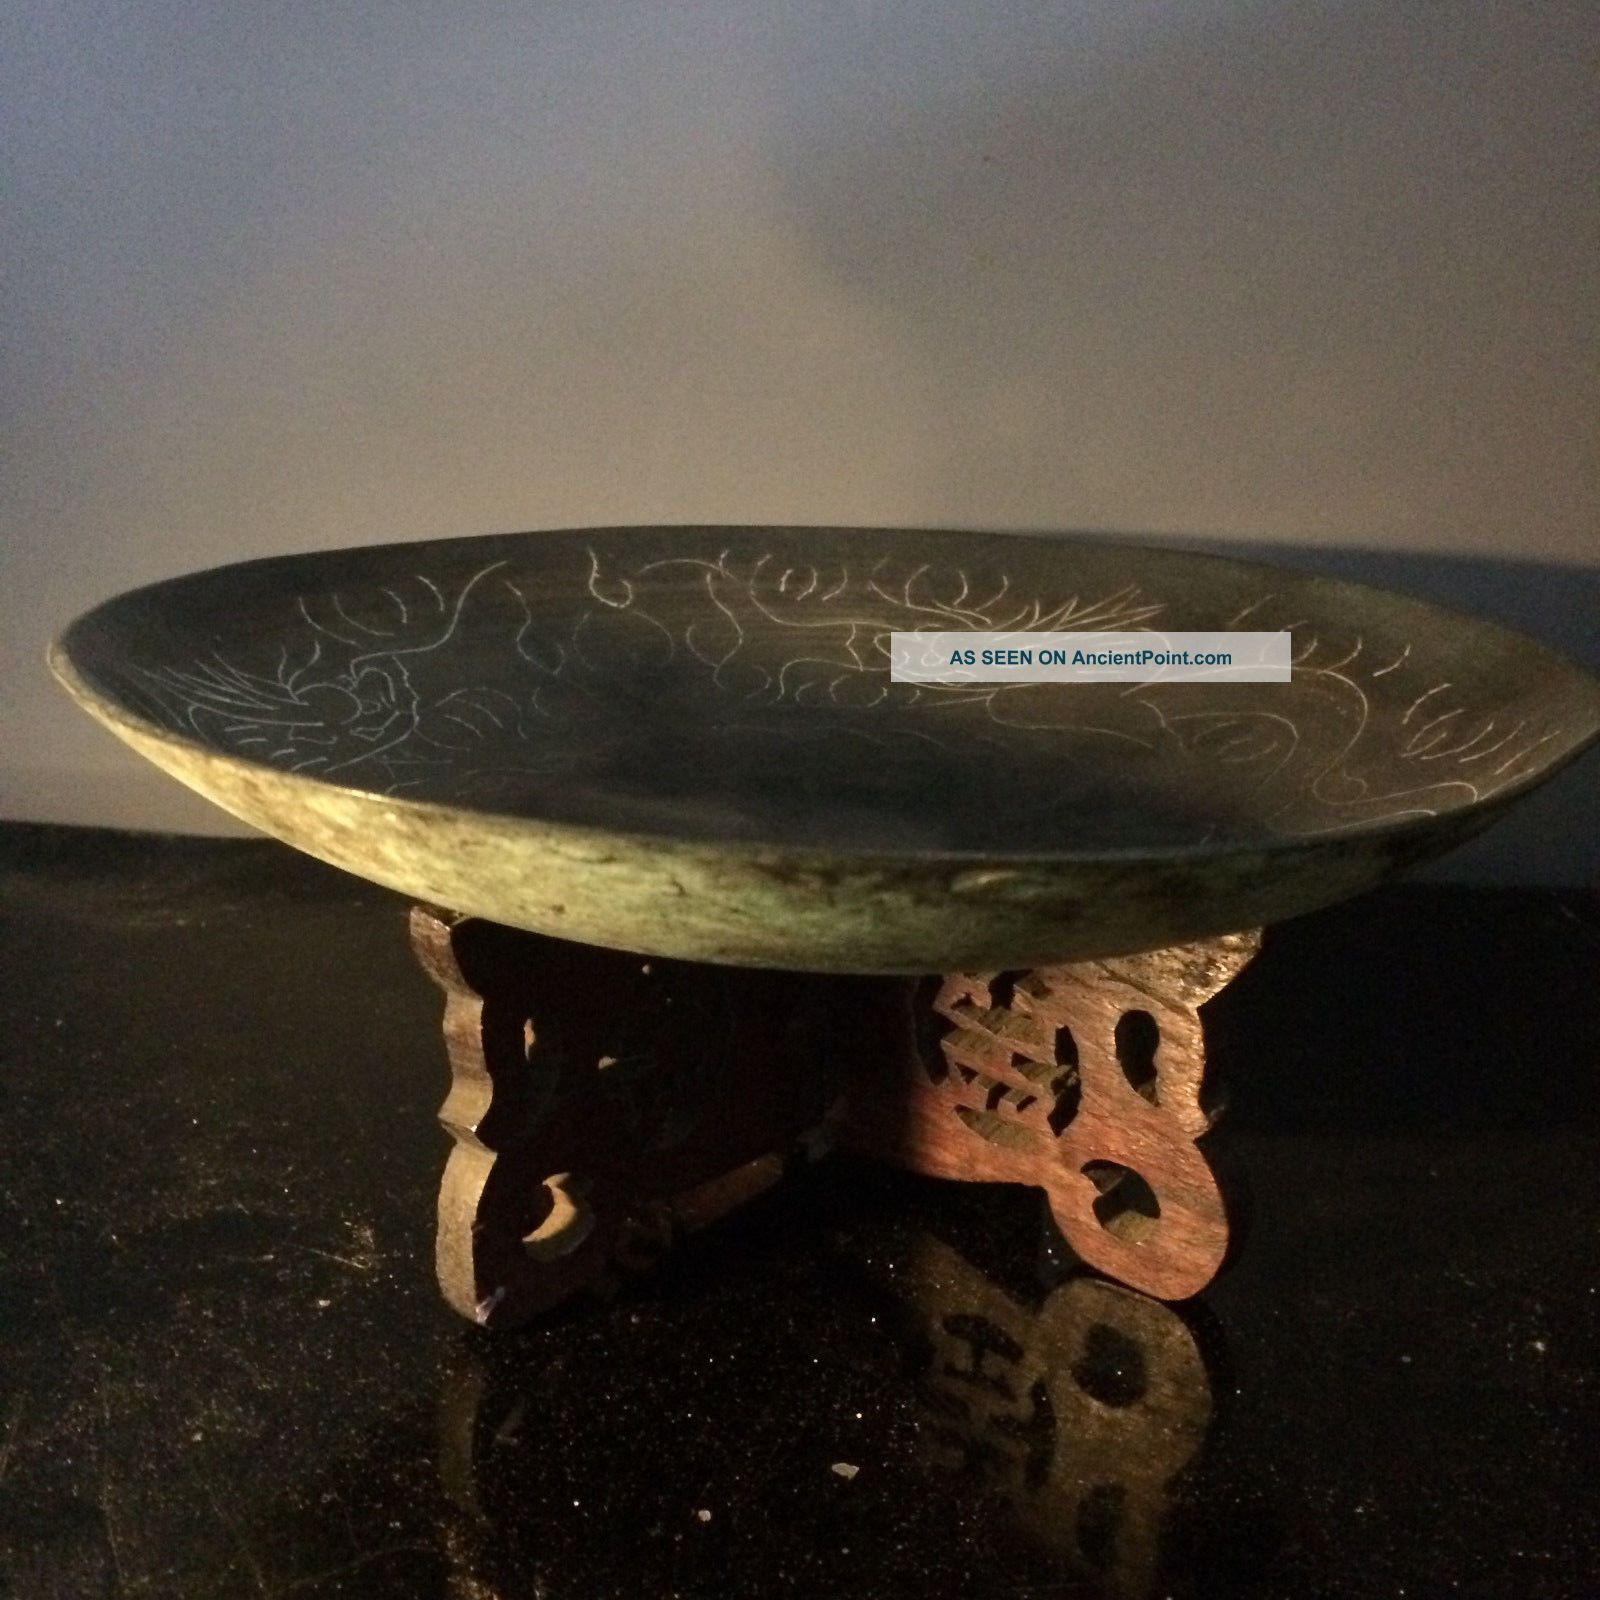 Antique Witchcraft Occult Offering Bowl Murgatroyd Witches Fred Gettings Other Ethnographic Antiques photo